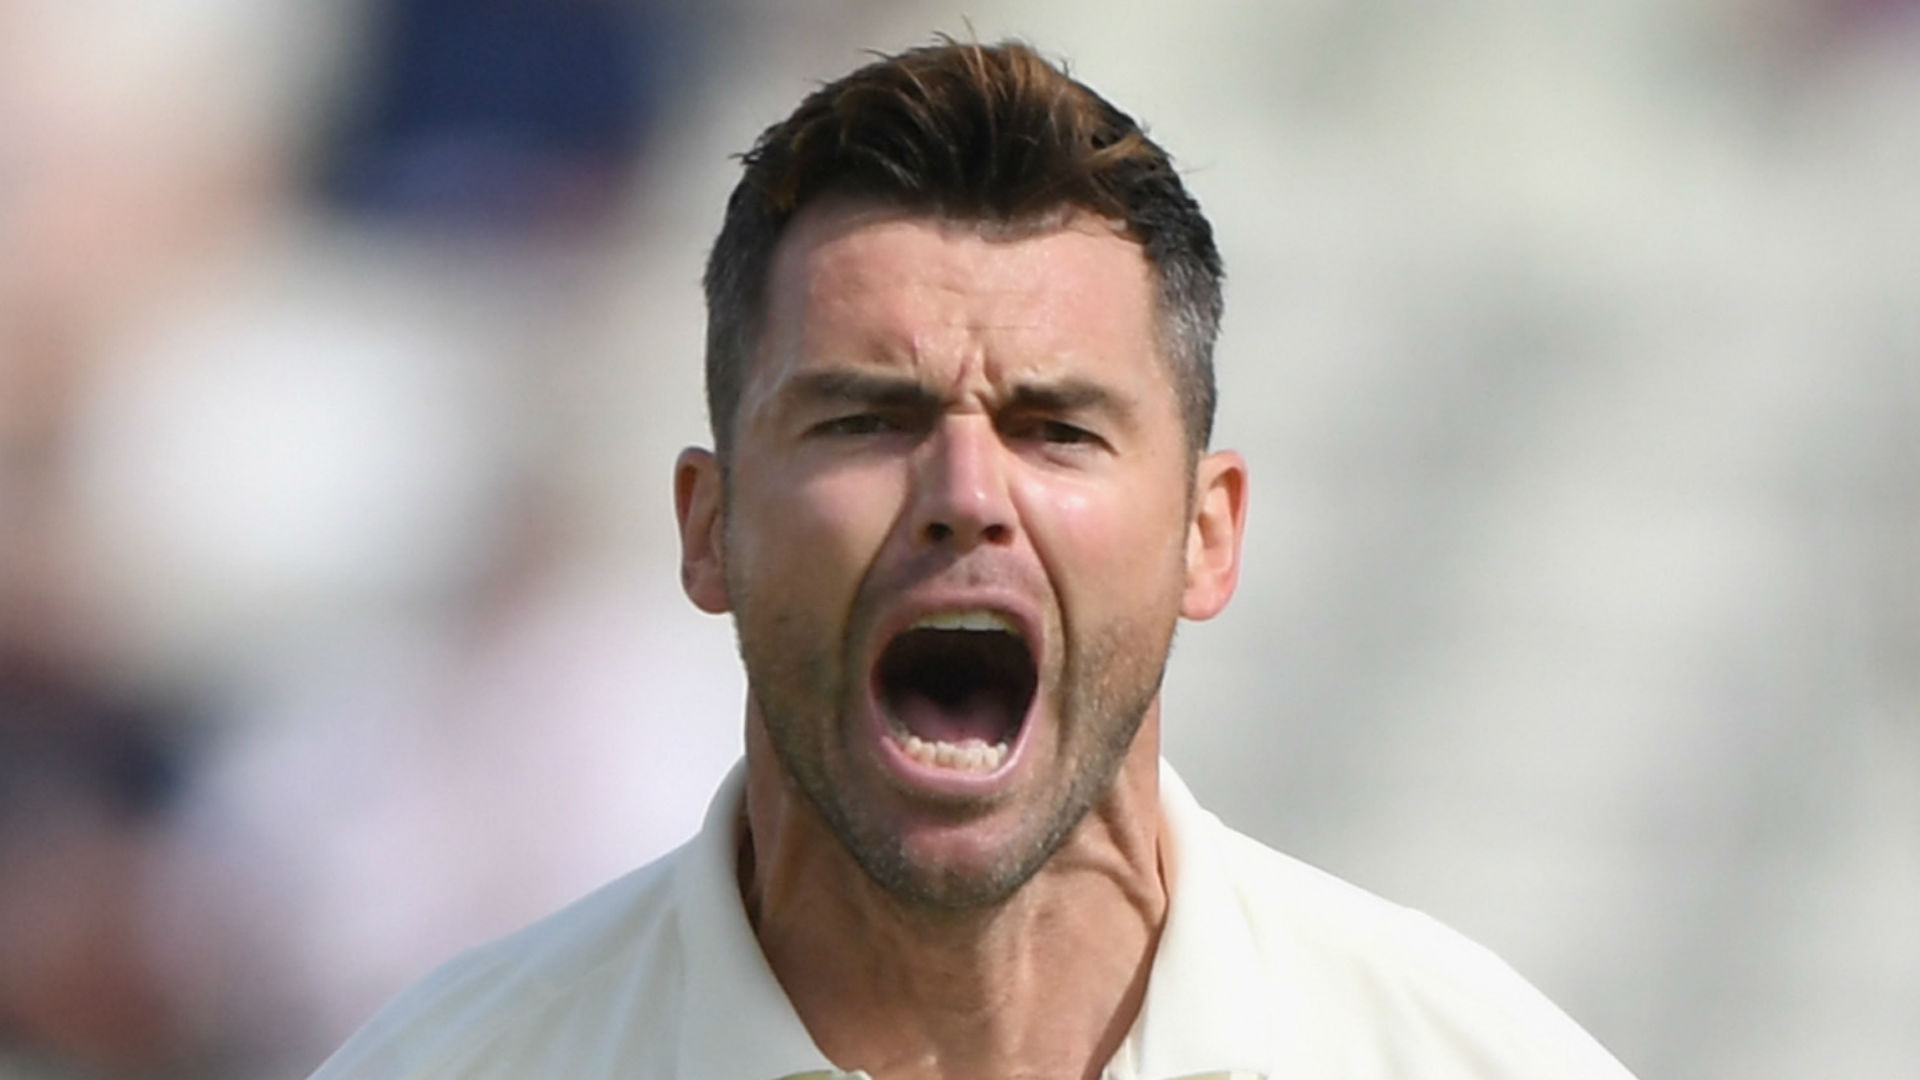 England bowler Jimmy Anderson ruled out of remainder of 2019 Ashes series